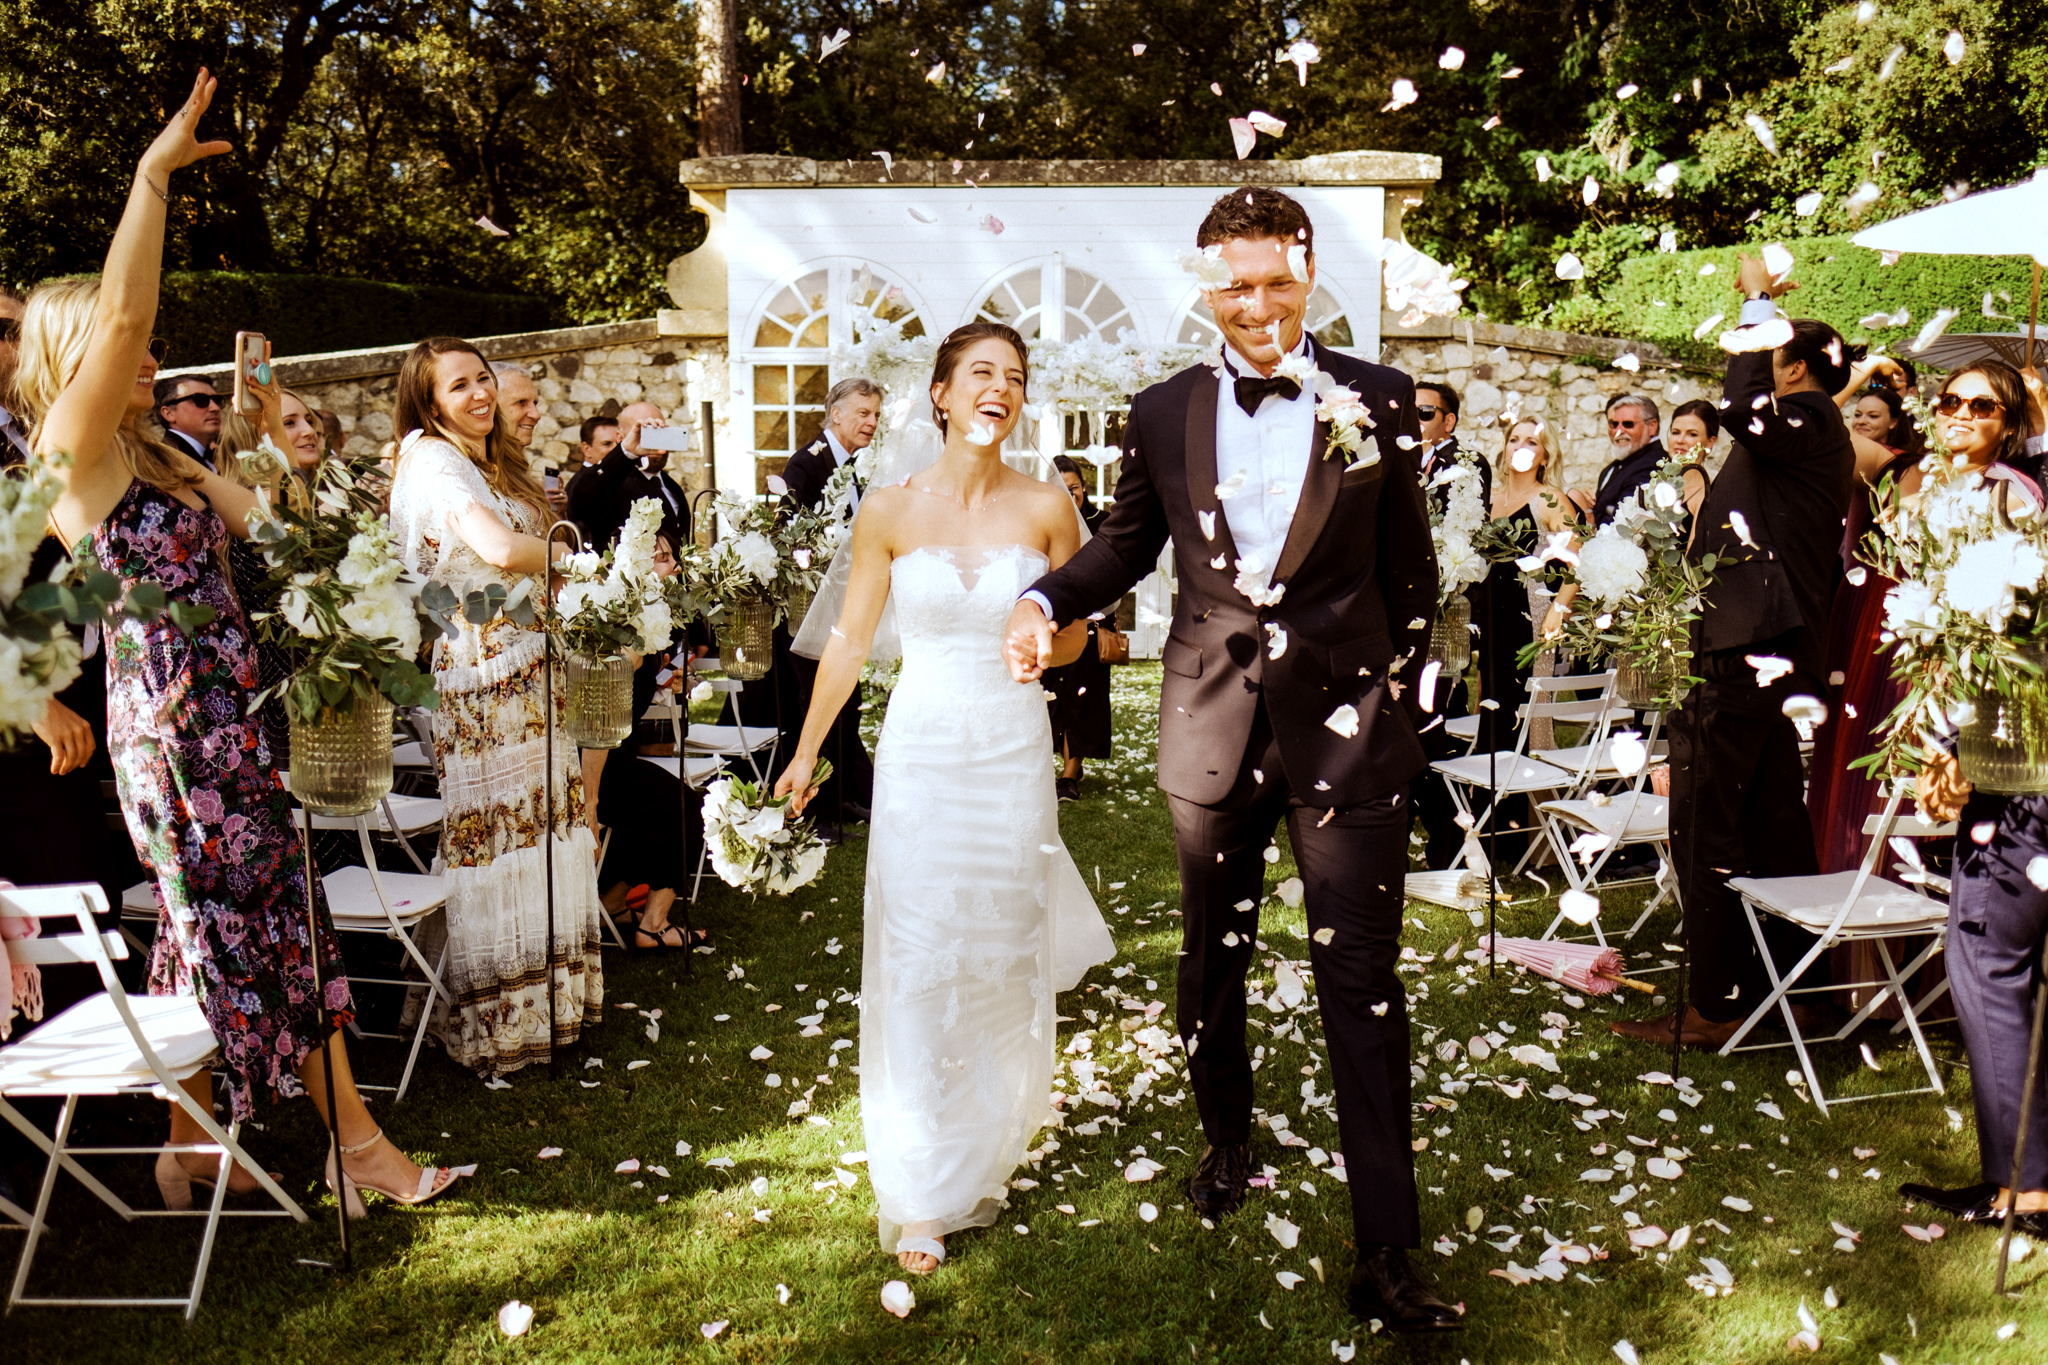 Destination Wedding Aix-en-Provence, France